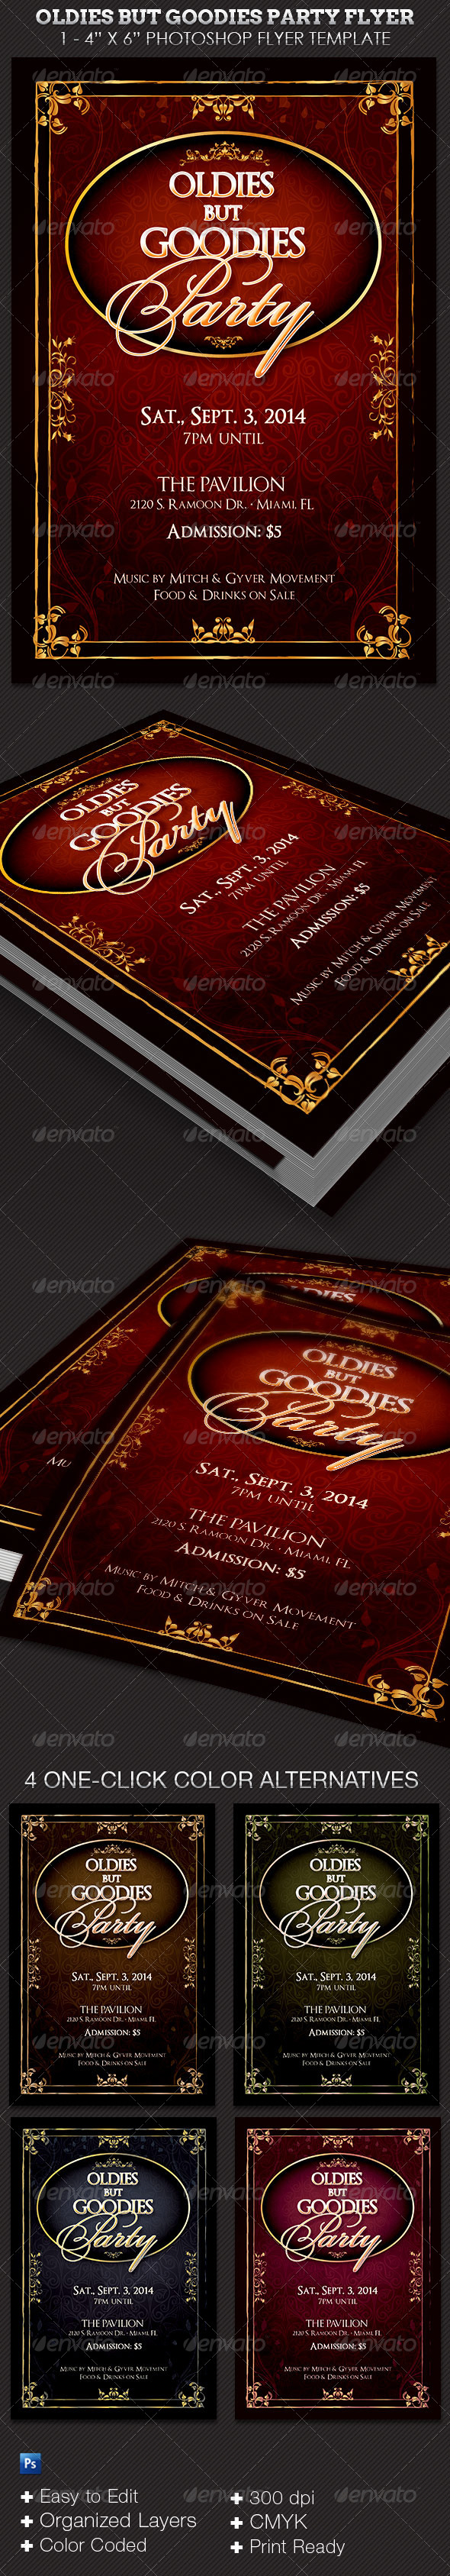 Oldies but Goodies Party Flyer Template  - Clubs & Parties Events